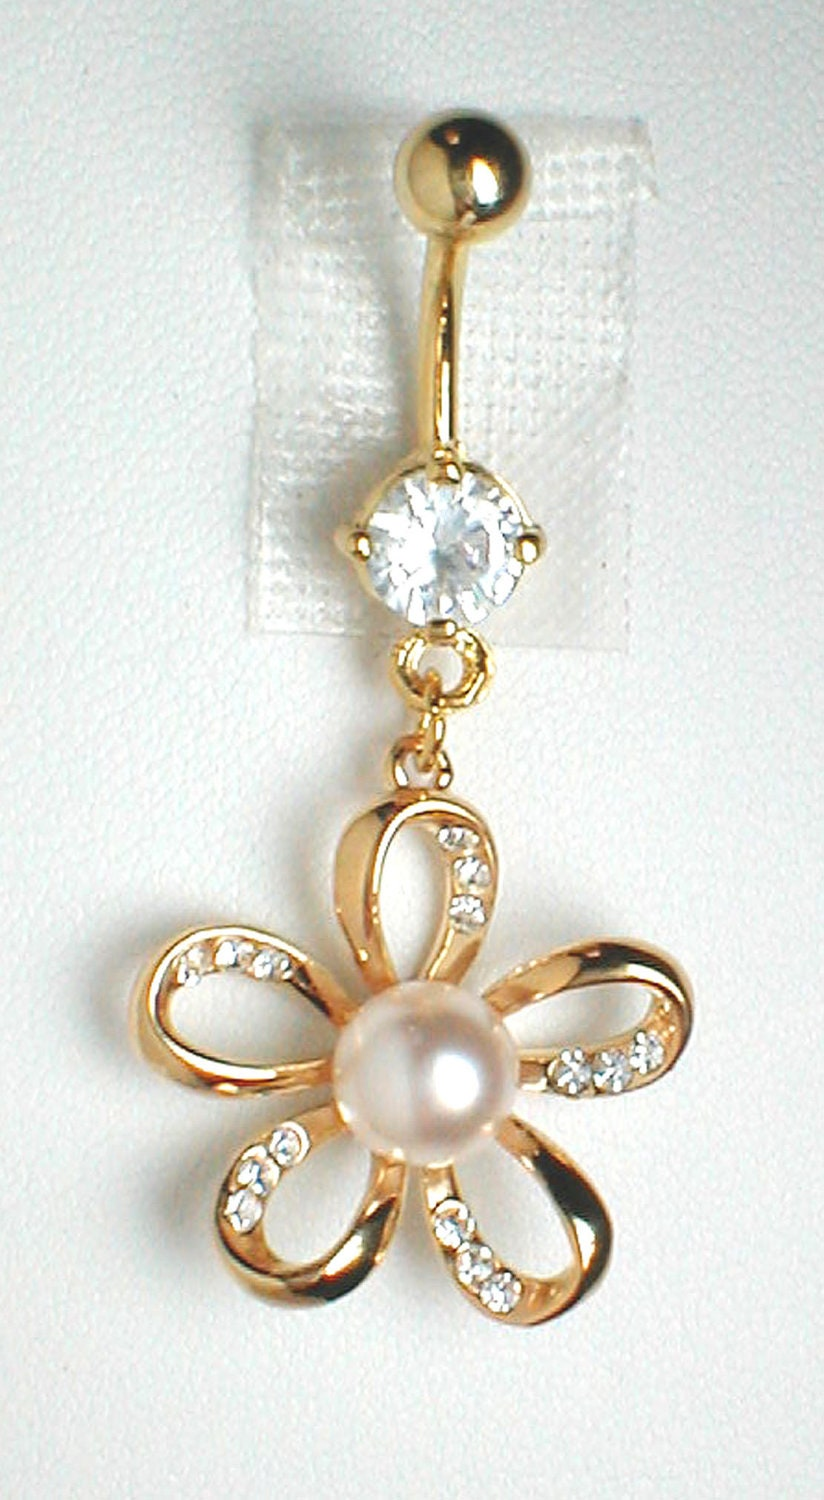 unique belly ring 9k gf flower with cz s and a pearl